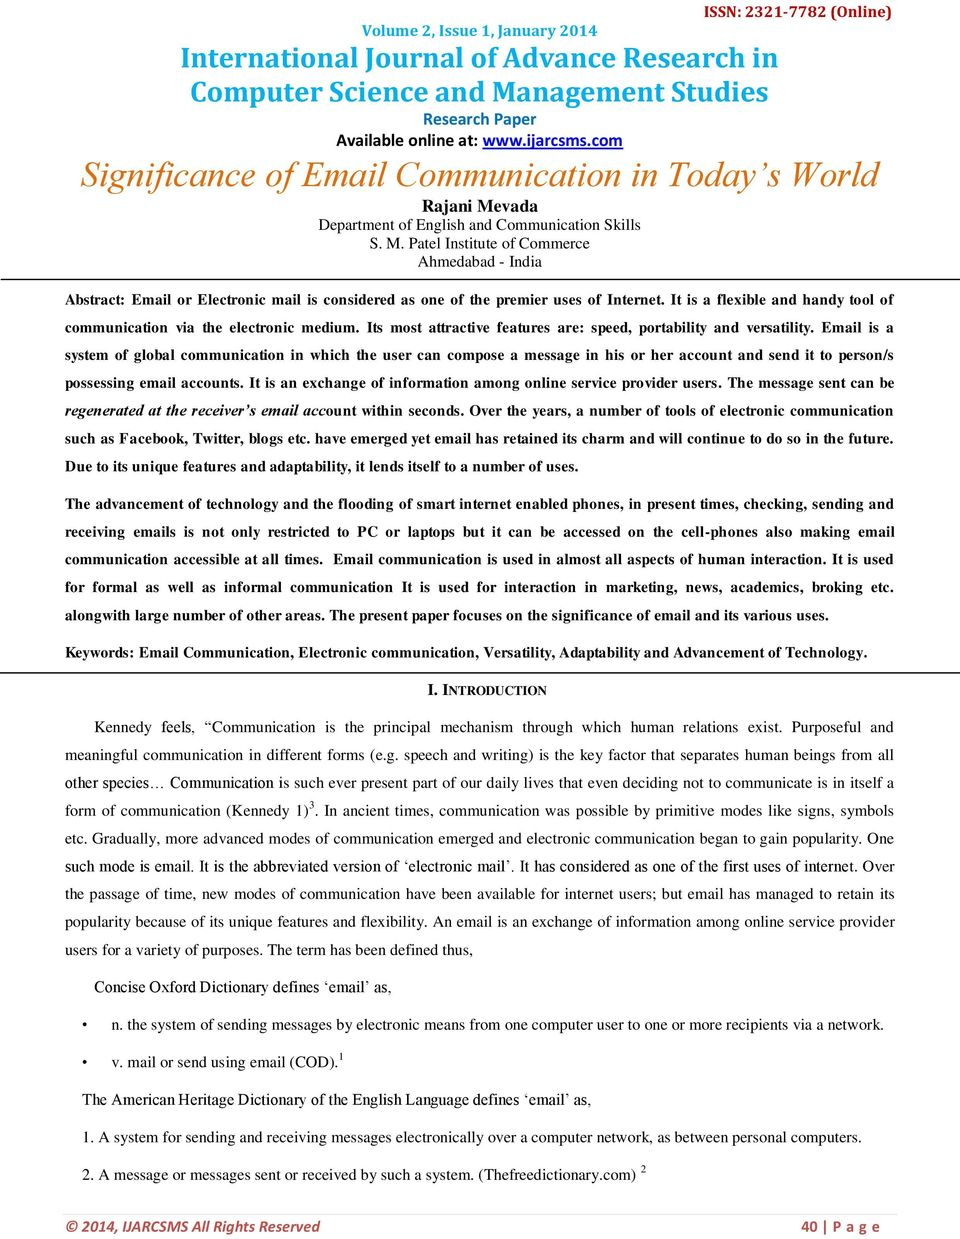 vada Department of English and Communication Skills S. M. Patel Institute of Commerce Ahmedabad - India Abstract: Email or Electronic mail is considered as one of the premier uses of Internet.